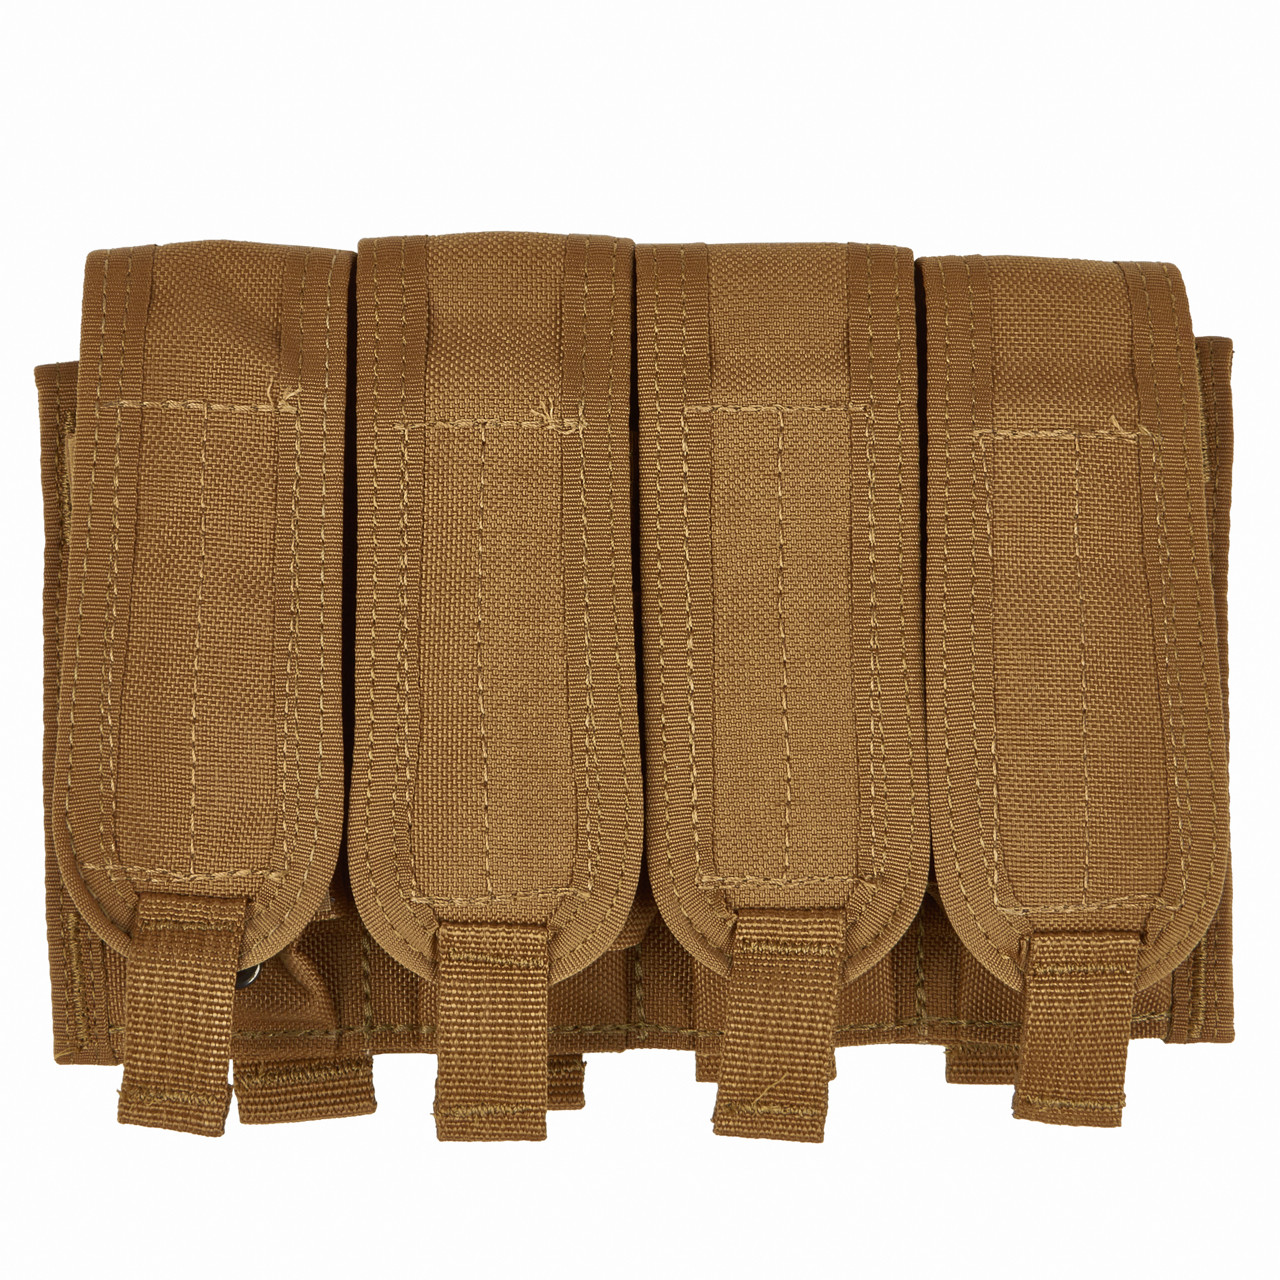 50454 UNIVERSAL MOLLE POUCH, 4 POCKET